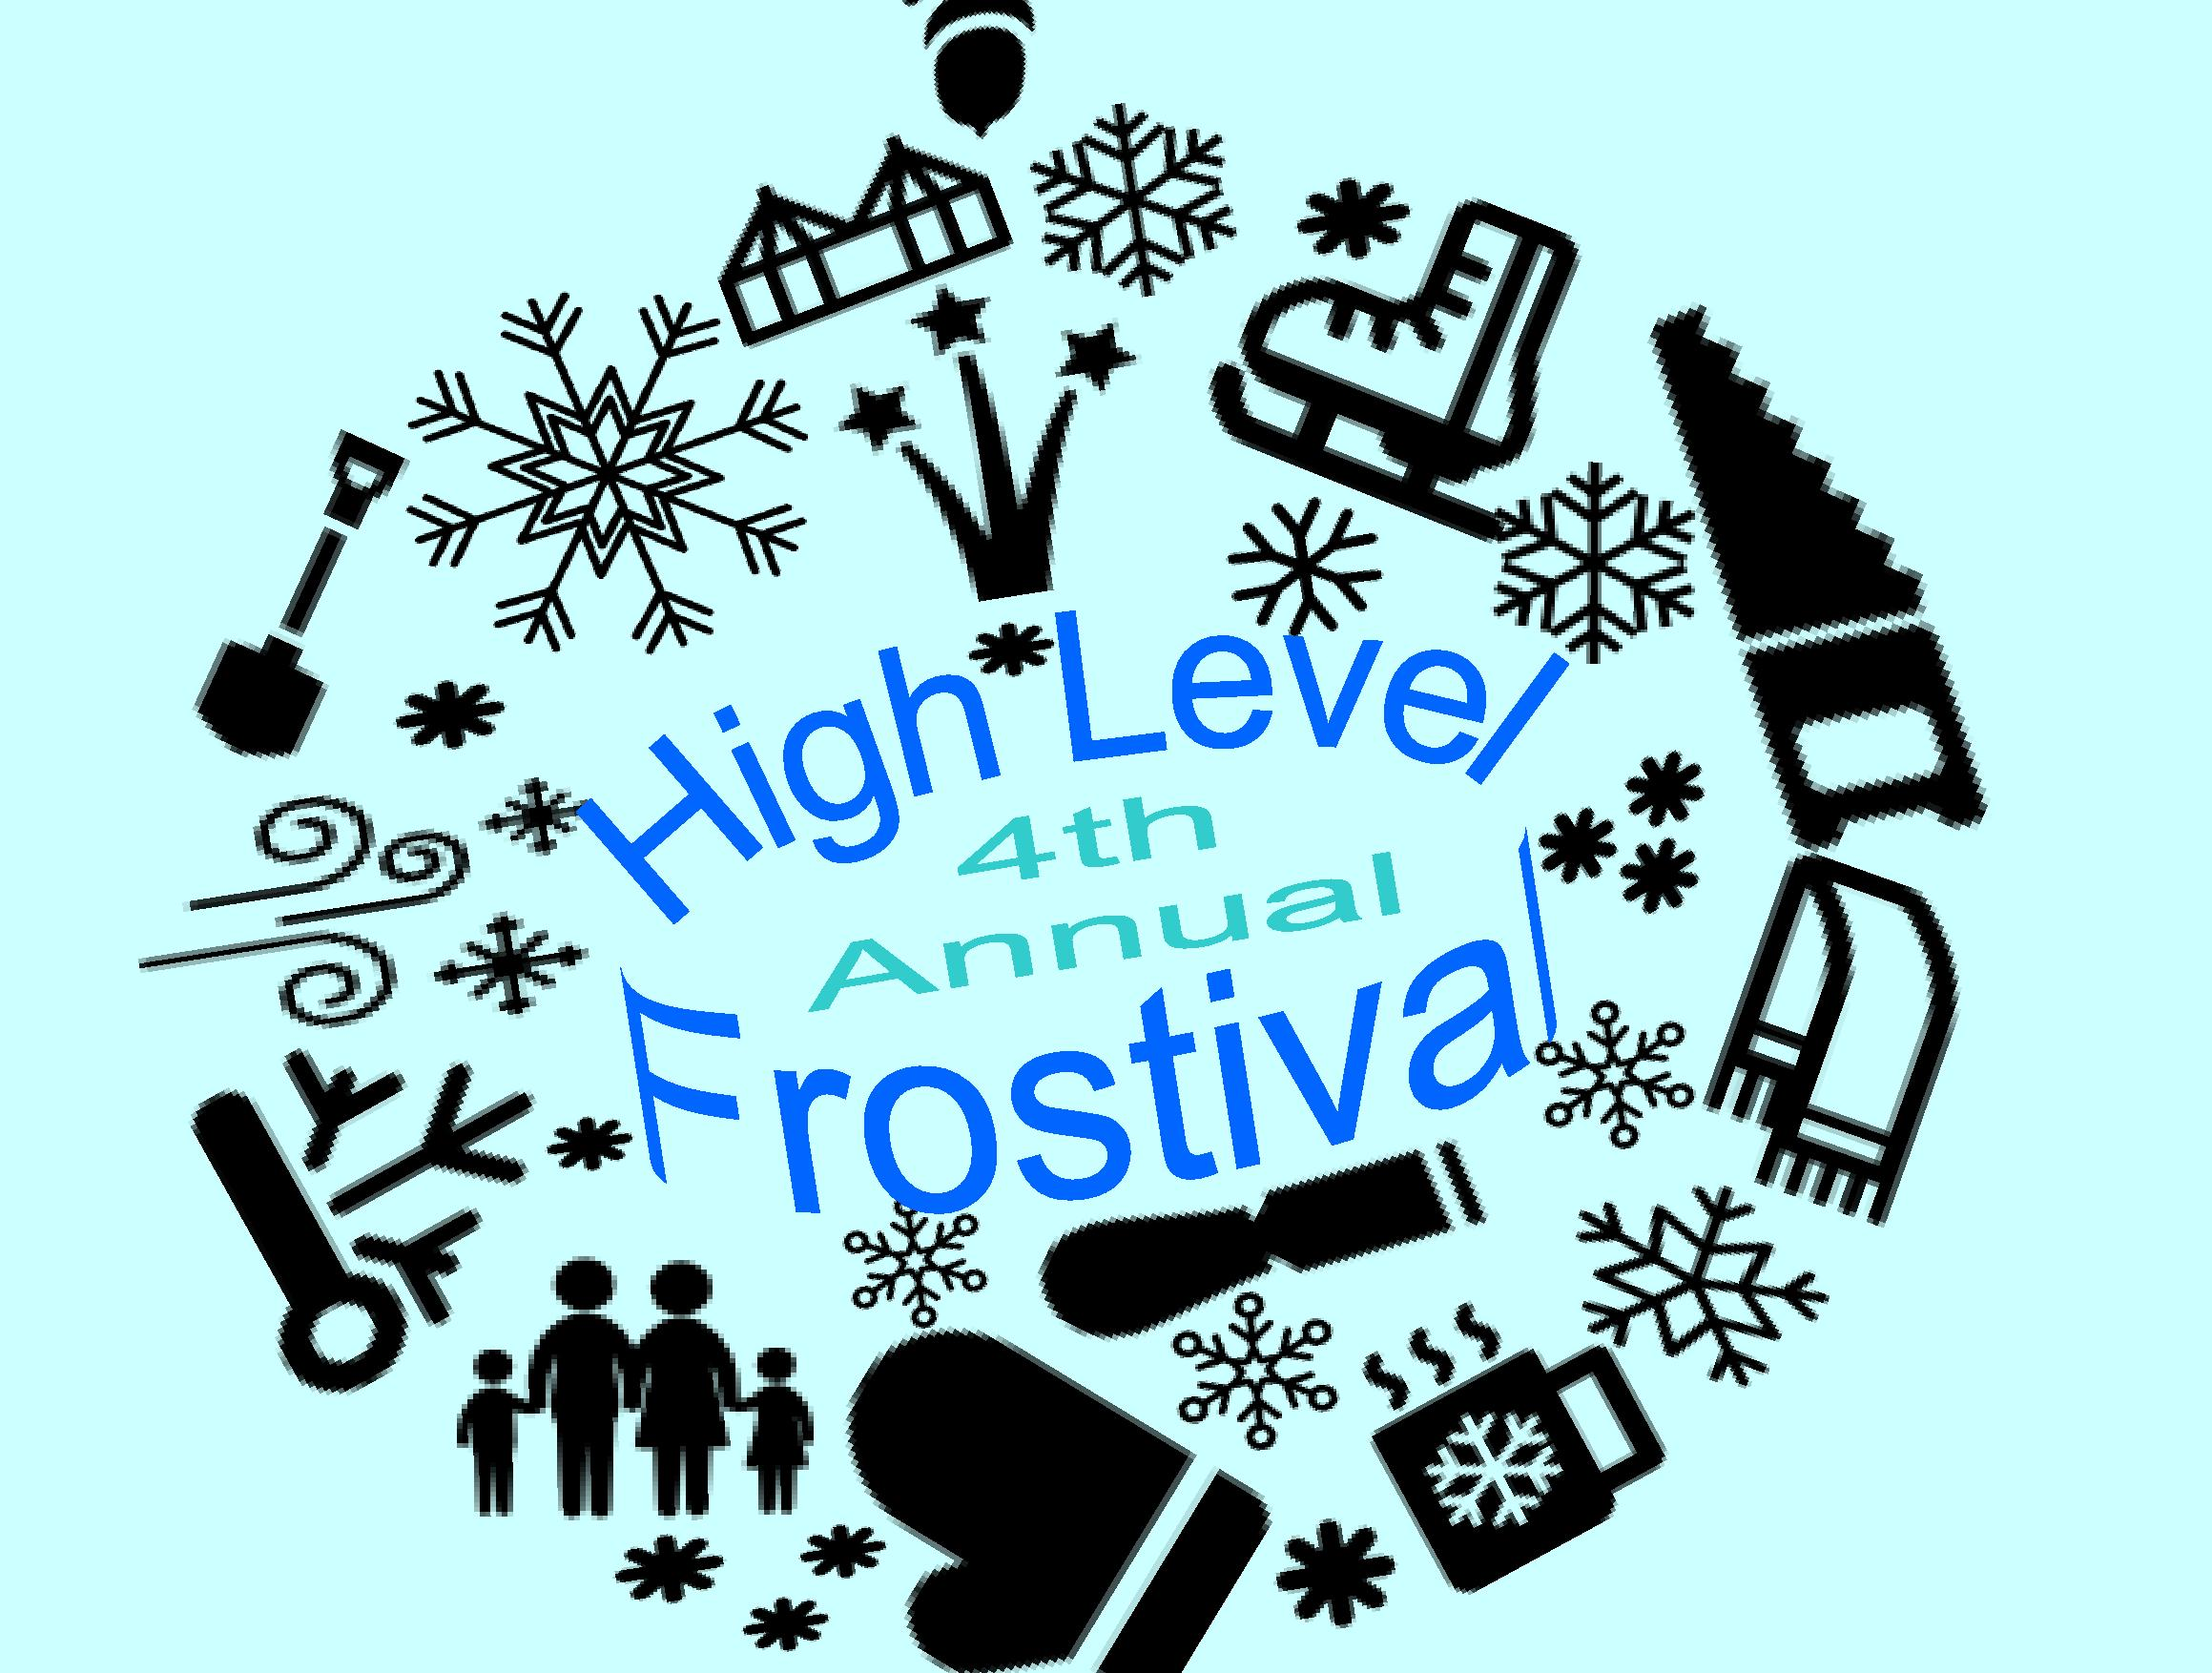 Frostival photo